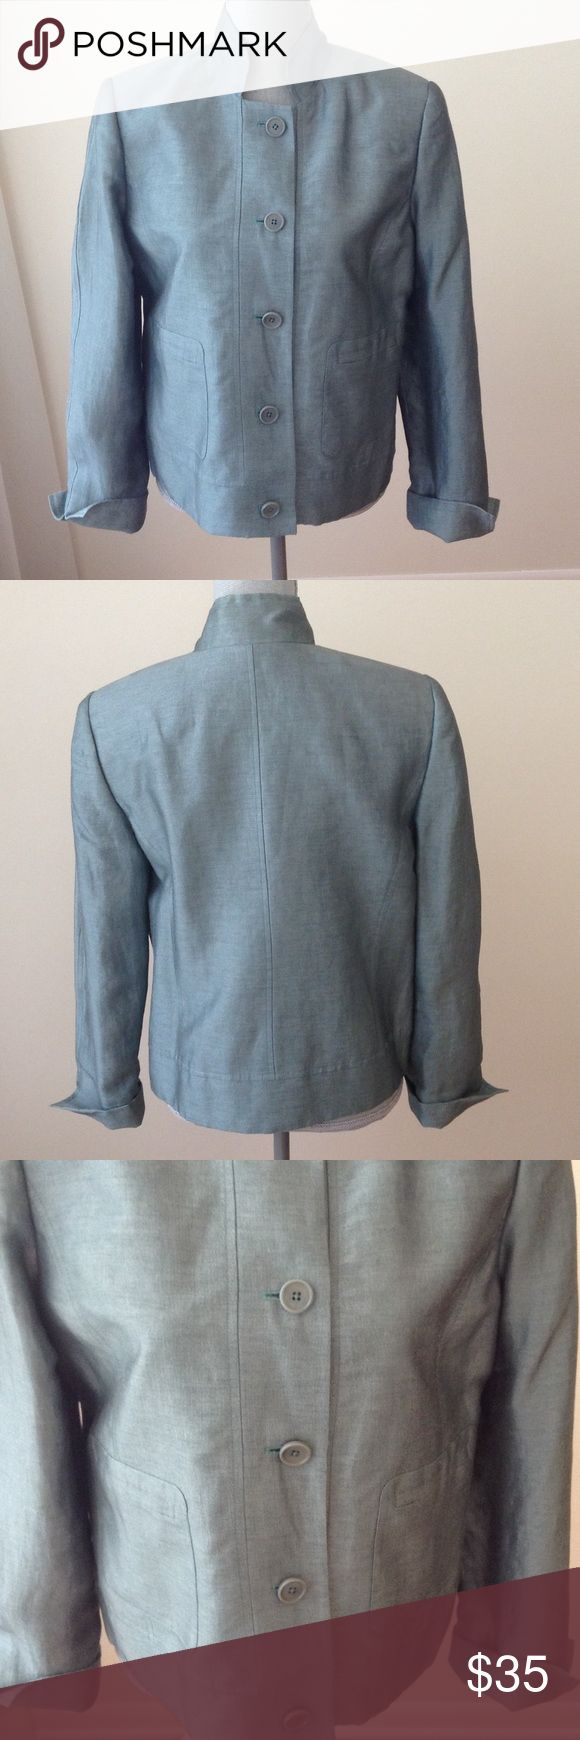 """Dark Sea Foam Green Nehru Style Jacket Pre-Loved condition with lots of life left! 2 front patch pockets. 5 front button closure. Measures approximately 22.5"""" from nape to bottom of hem, and 23"""" from armscye to Sleeve hem. 87% linen, 13% nylon; lining is 100% acetate. Dry clean only. Linda  Allard Ellen Tracy Jackets & Coats Blazers"""